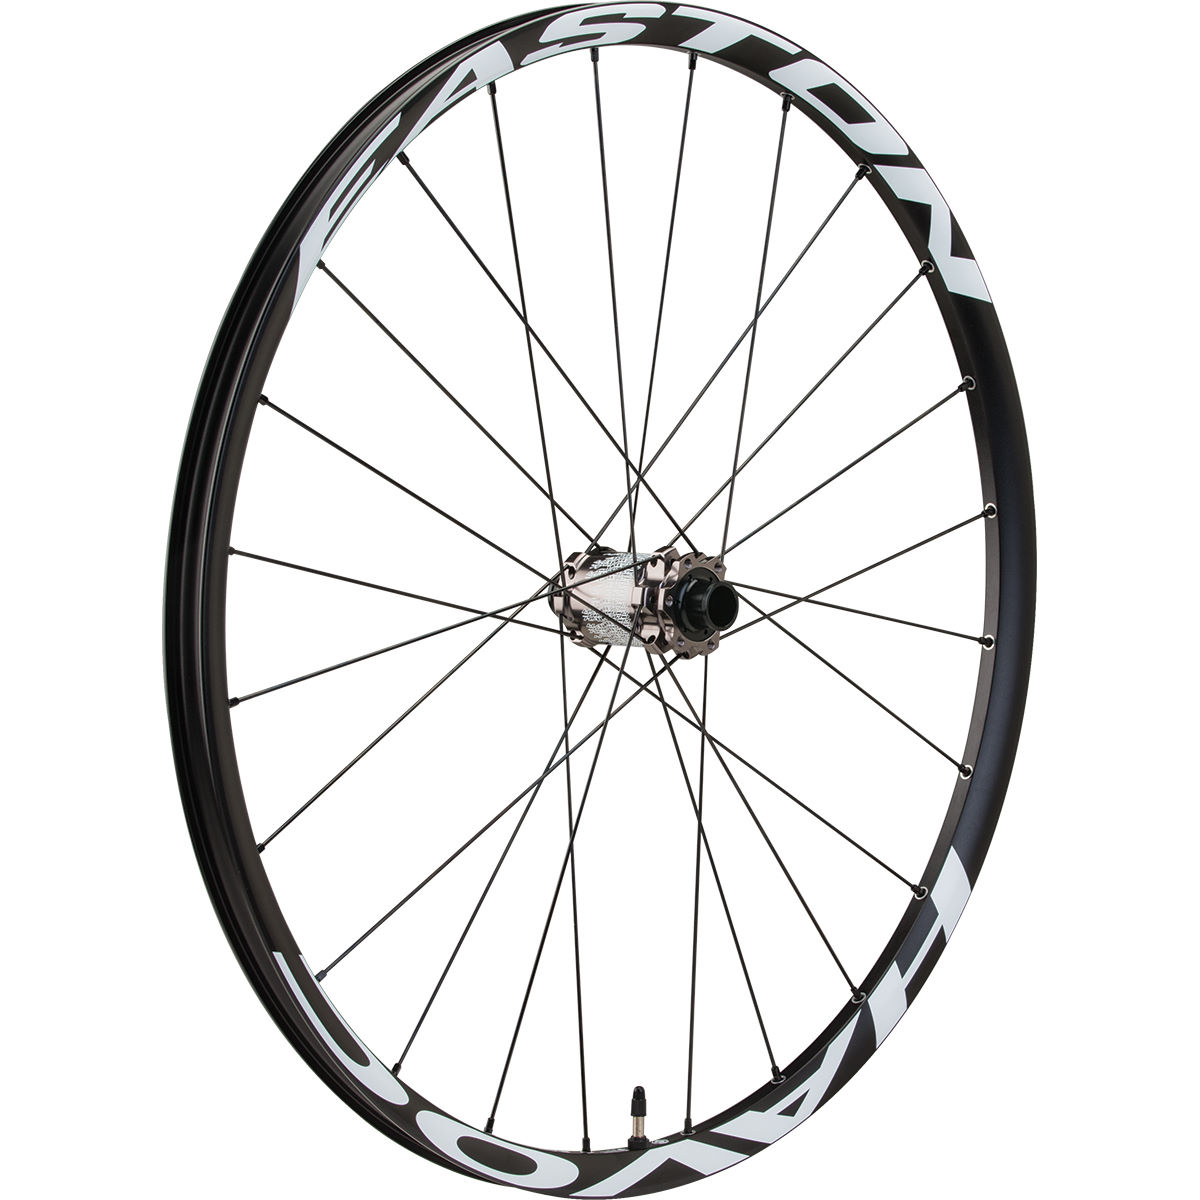 Roue avant VTT Easton Havoc - 27.5'' (650b) n/a 15m Black - White